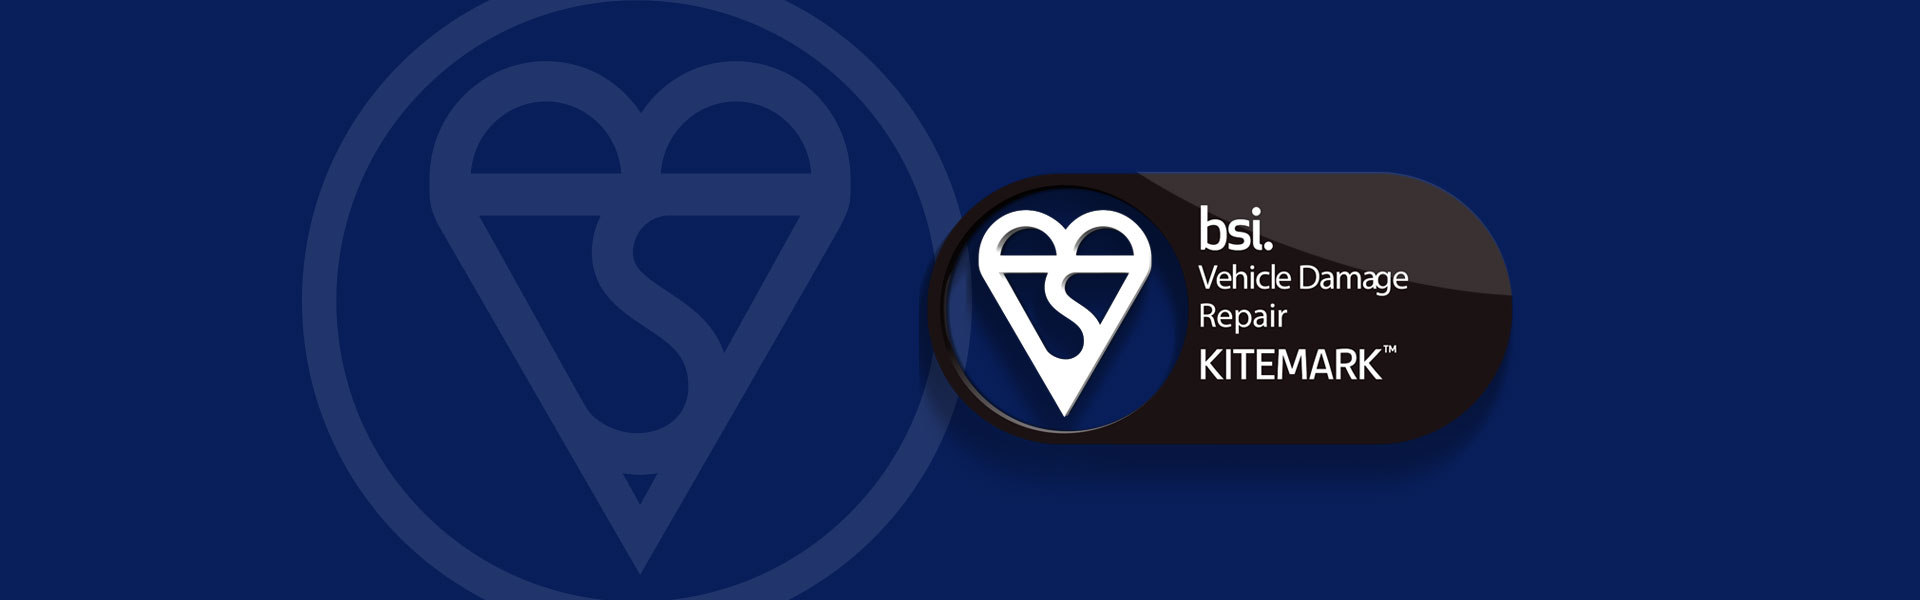 BSI Kitemark - BS10125 Accredited